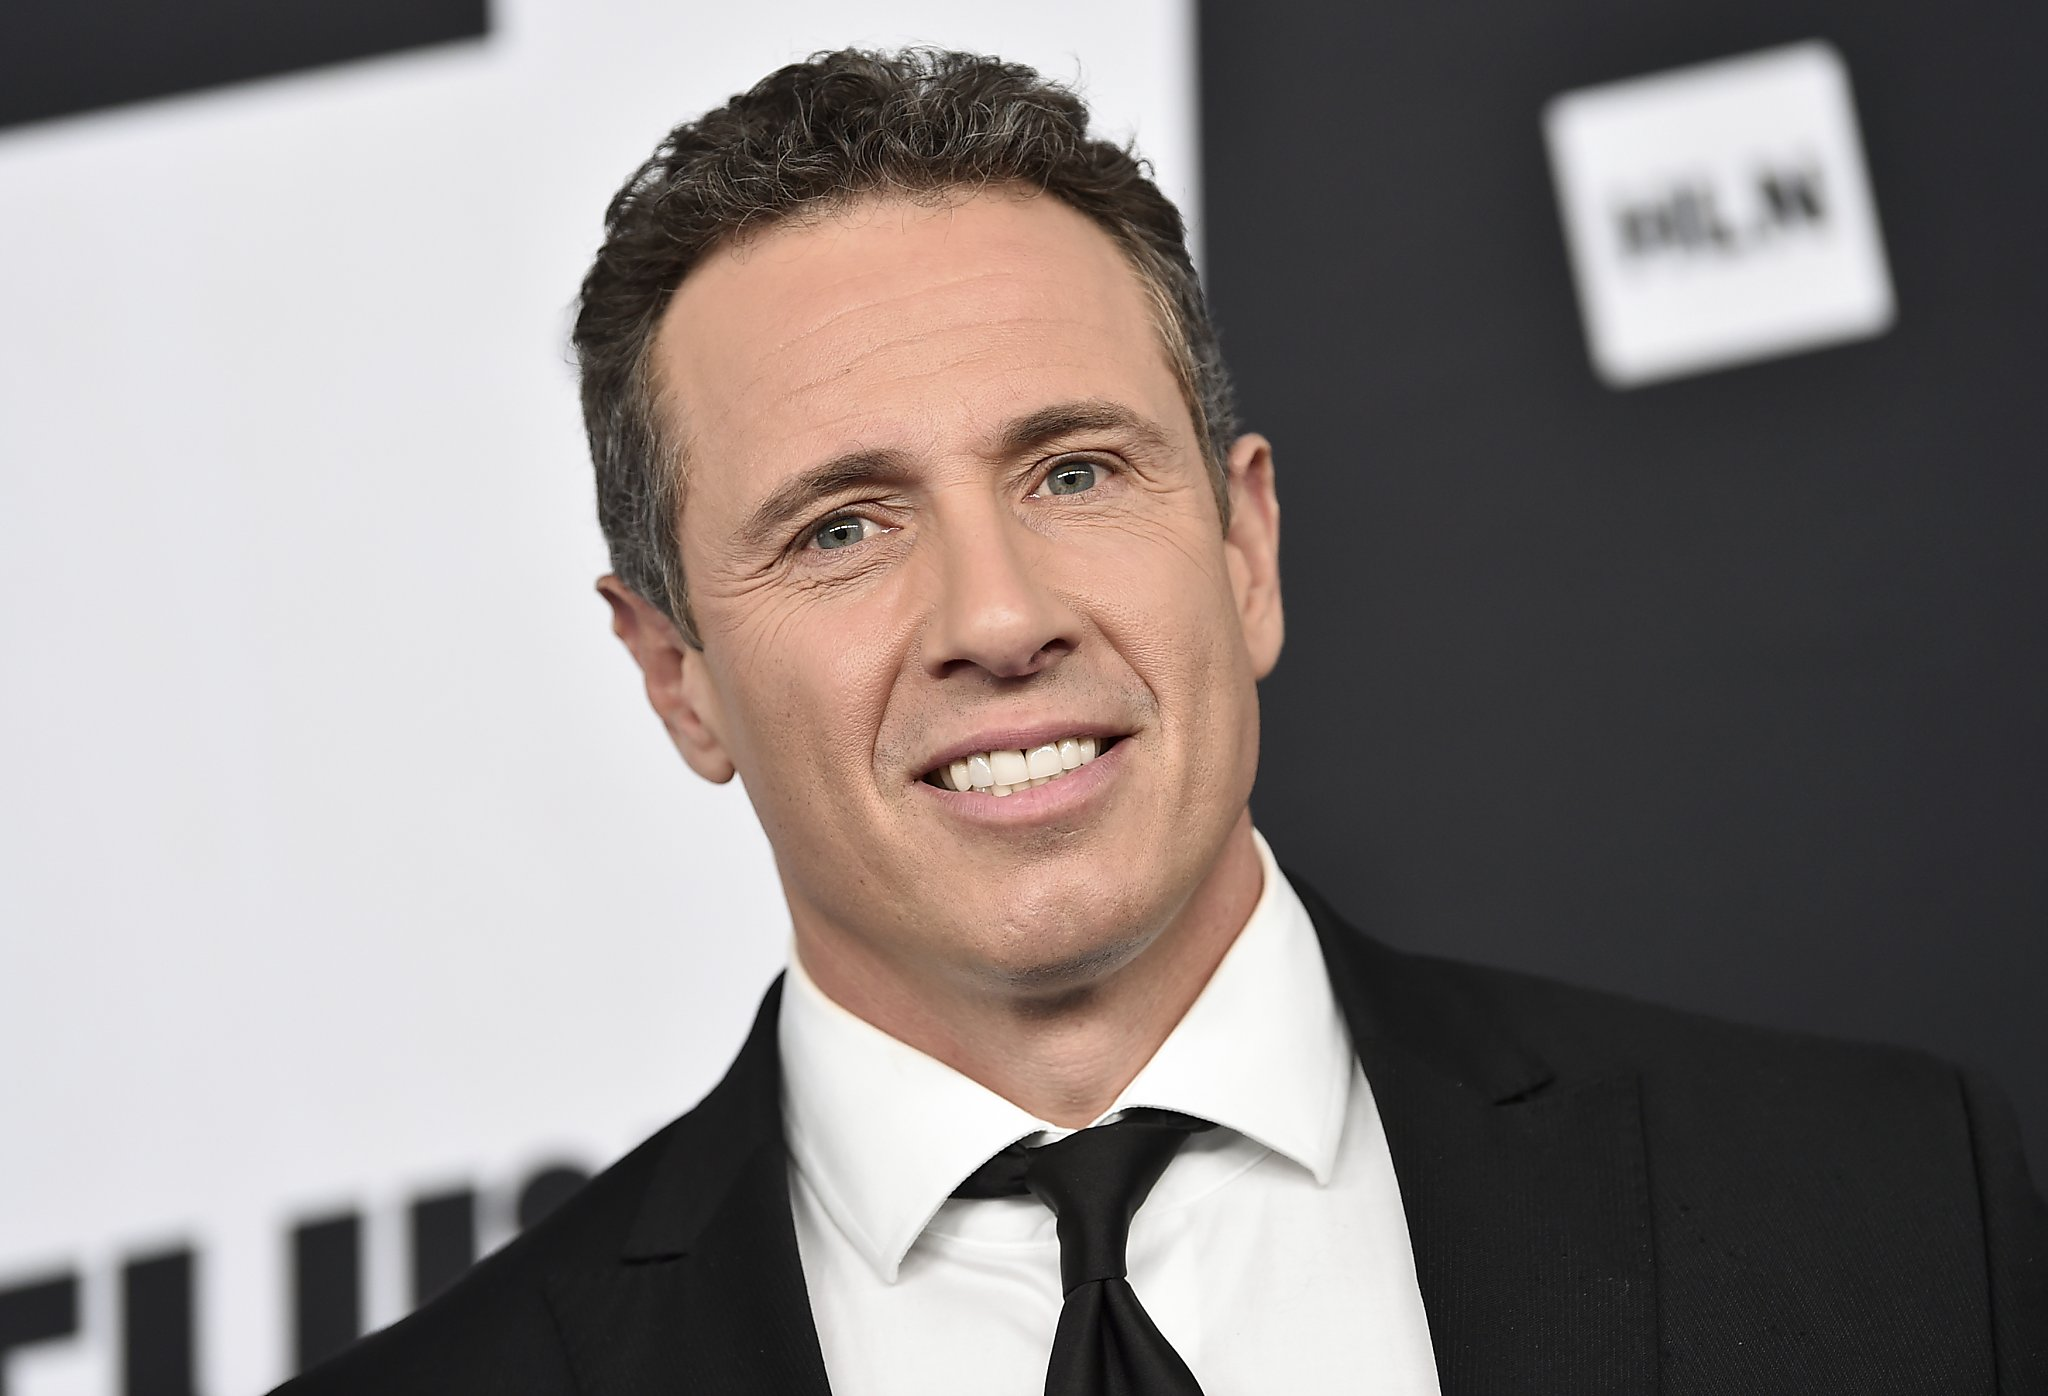 California restaurant owner who wants proof of unvaccination has bonkers Chris Cuomo CNN interview - SF Gate